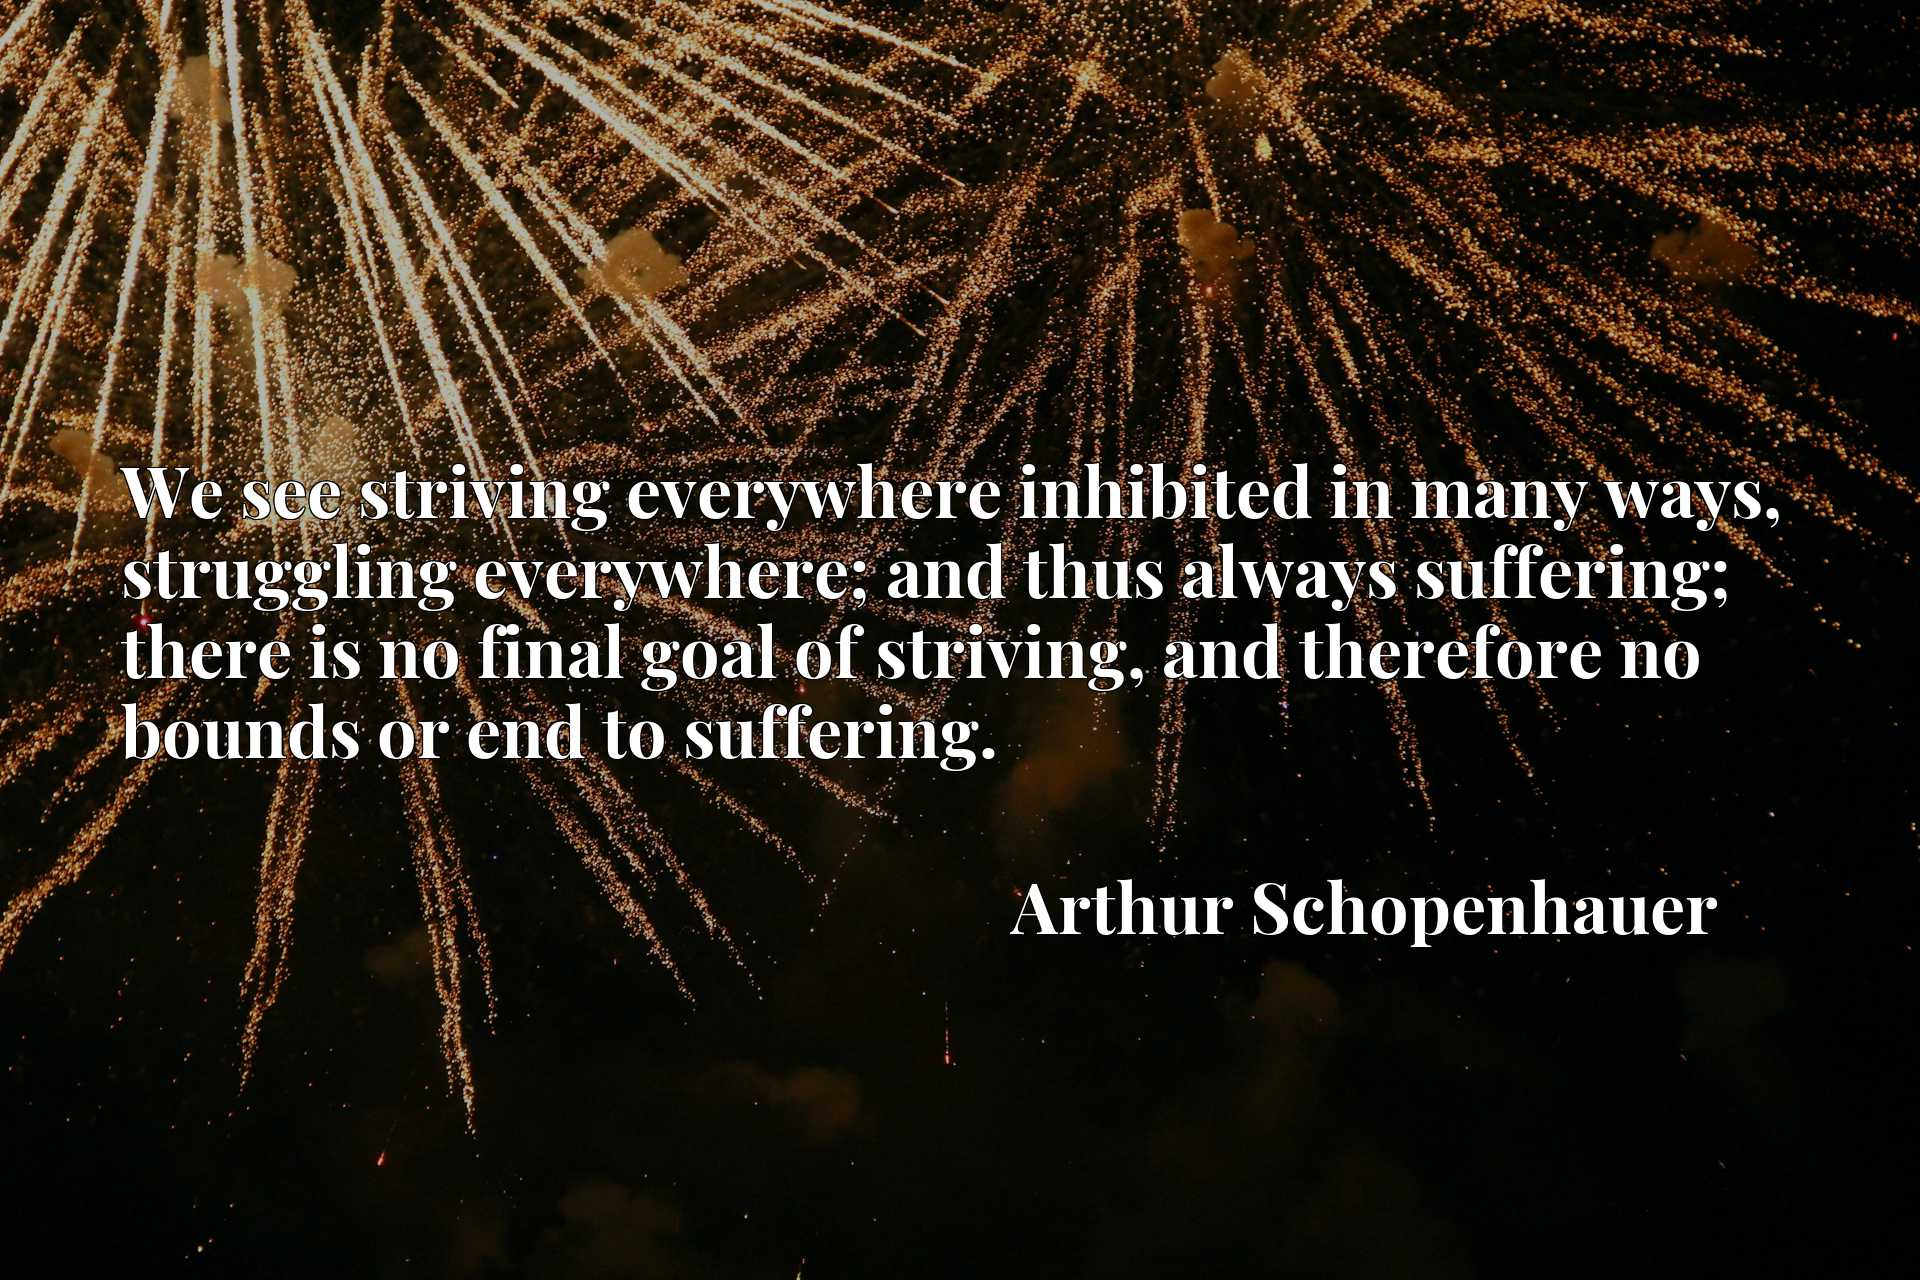 We see striving everywhere inhibited in many ways, struggling everywhere; and thus always suffering; there is no final goal of striving, and therefore no bounds or end to suffering.